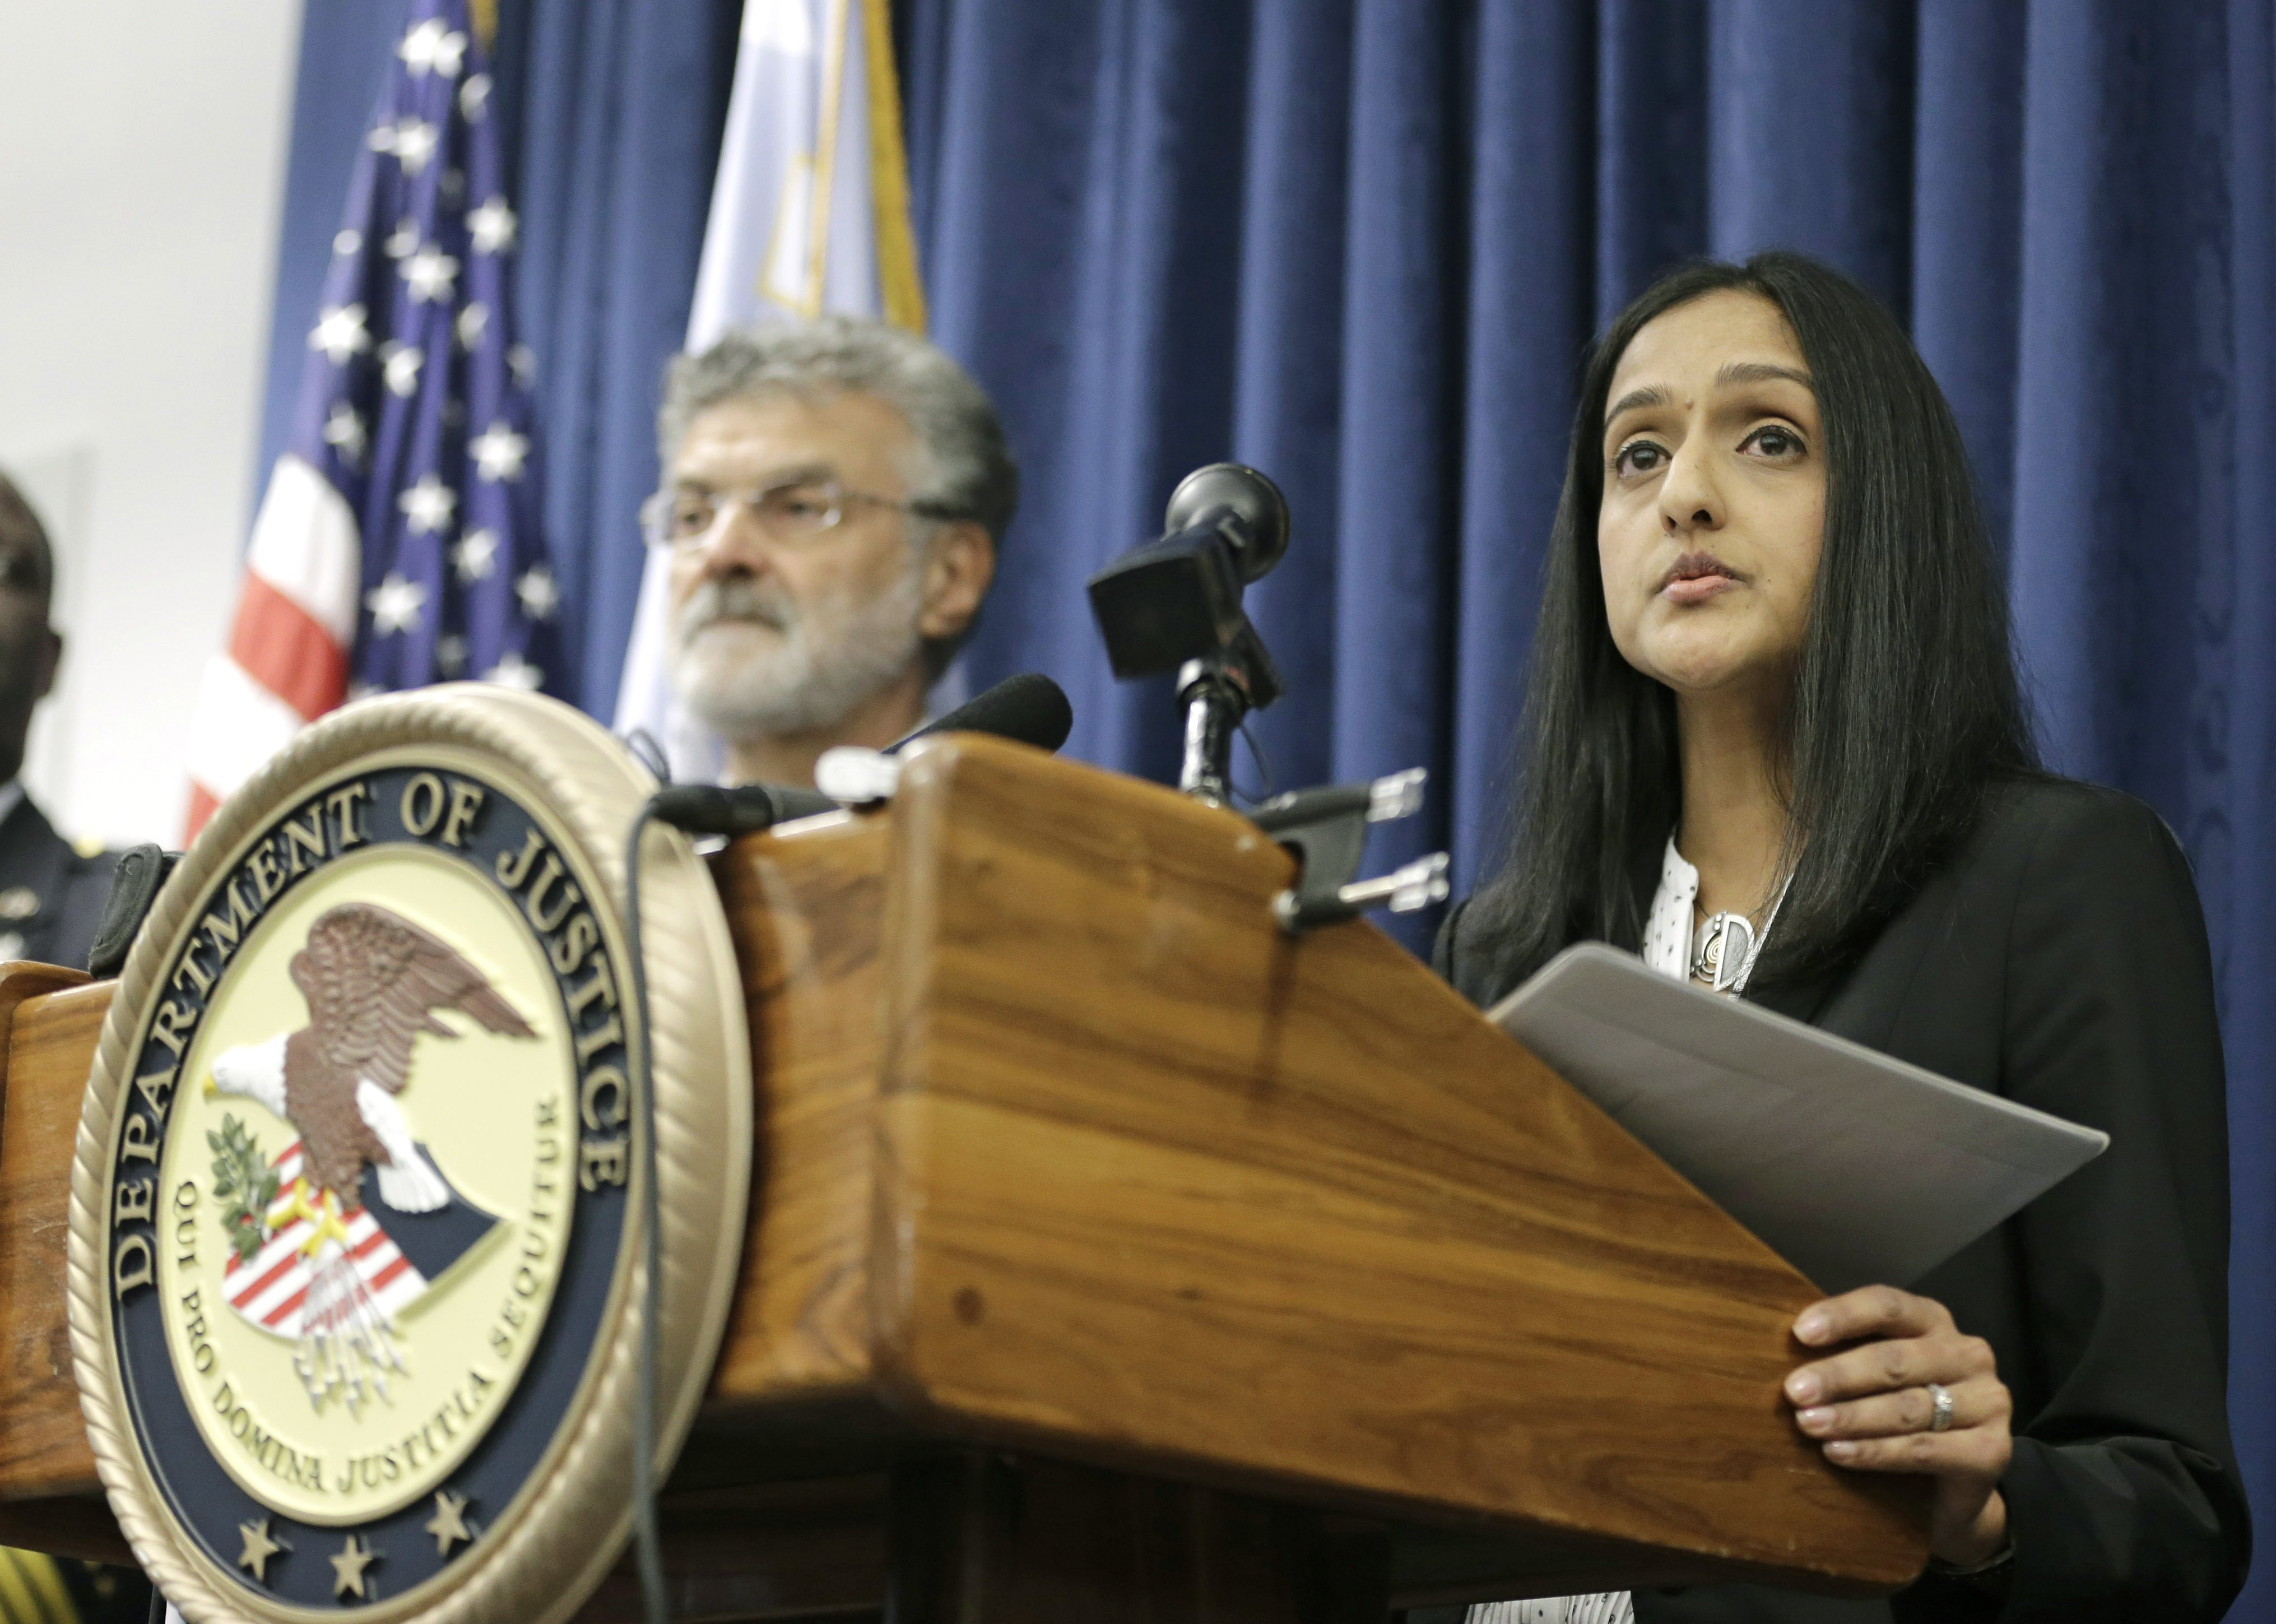 U.S. Acting Assistant Attorney General Vanita Gupta for the Civil Rights Division, right, makes a statement during a news conference on Dec. 4, 2014, in Cleveland.